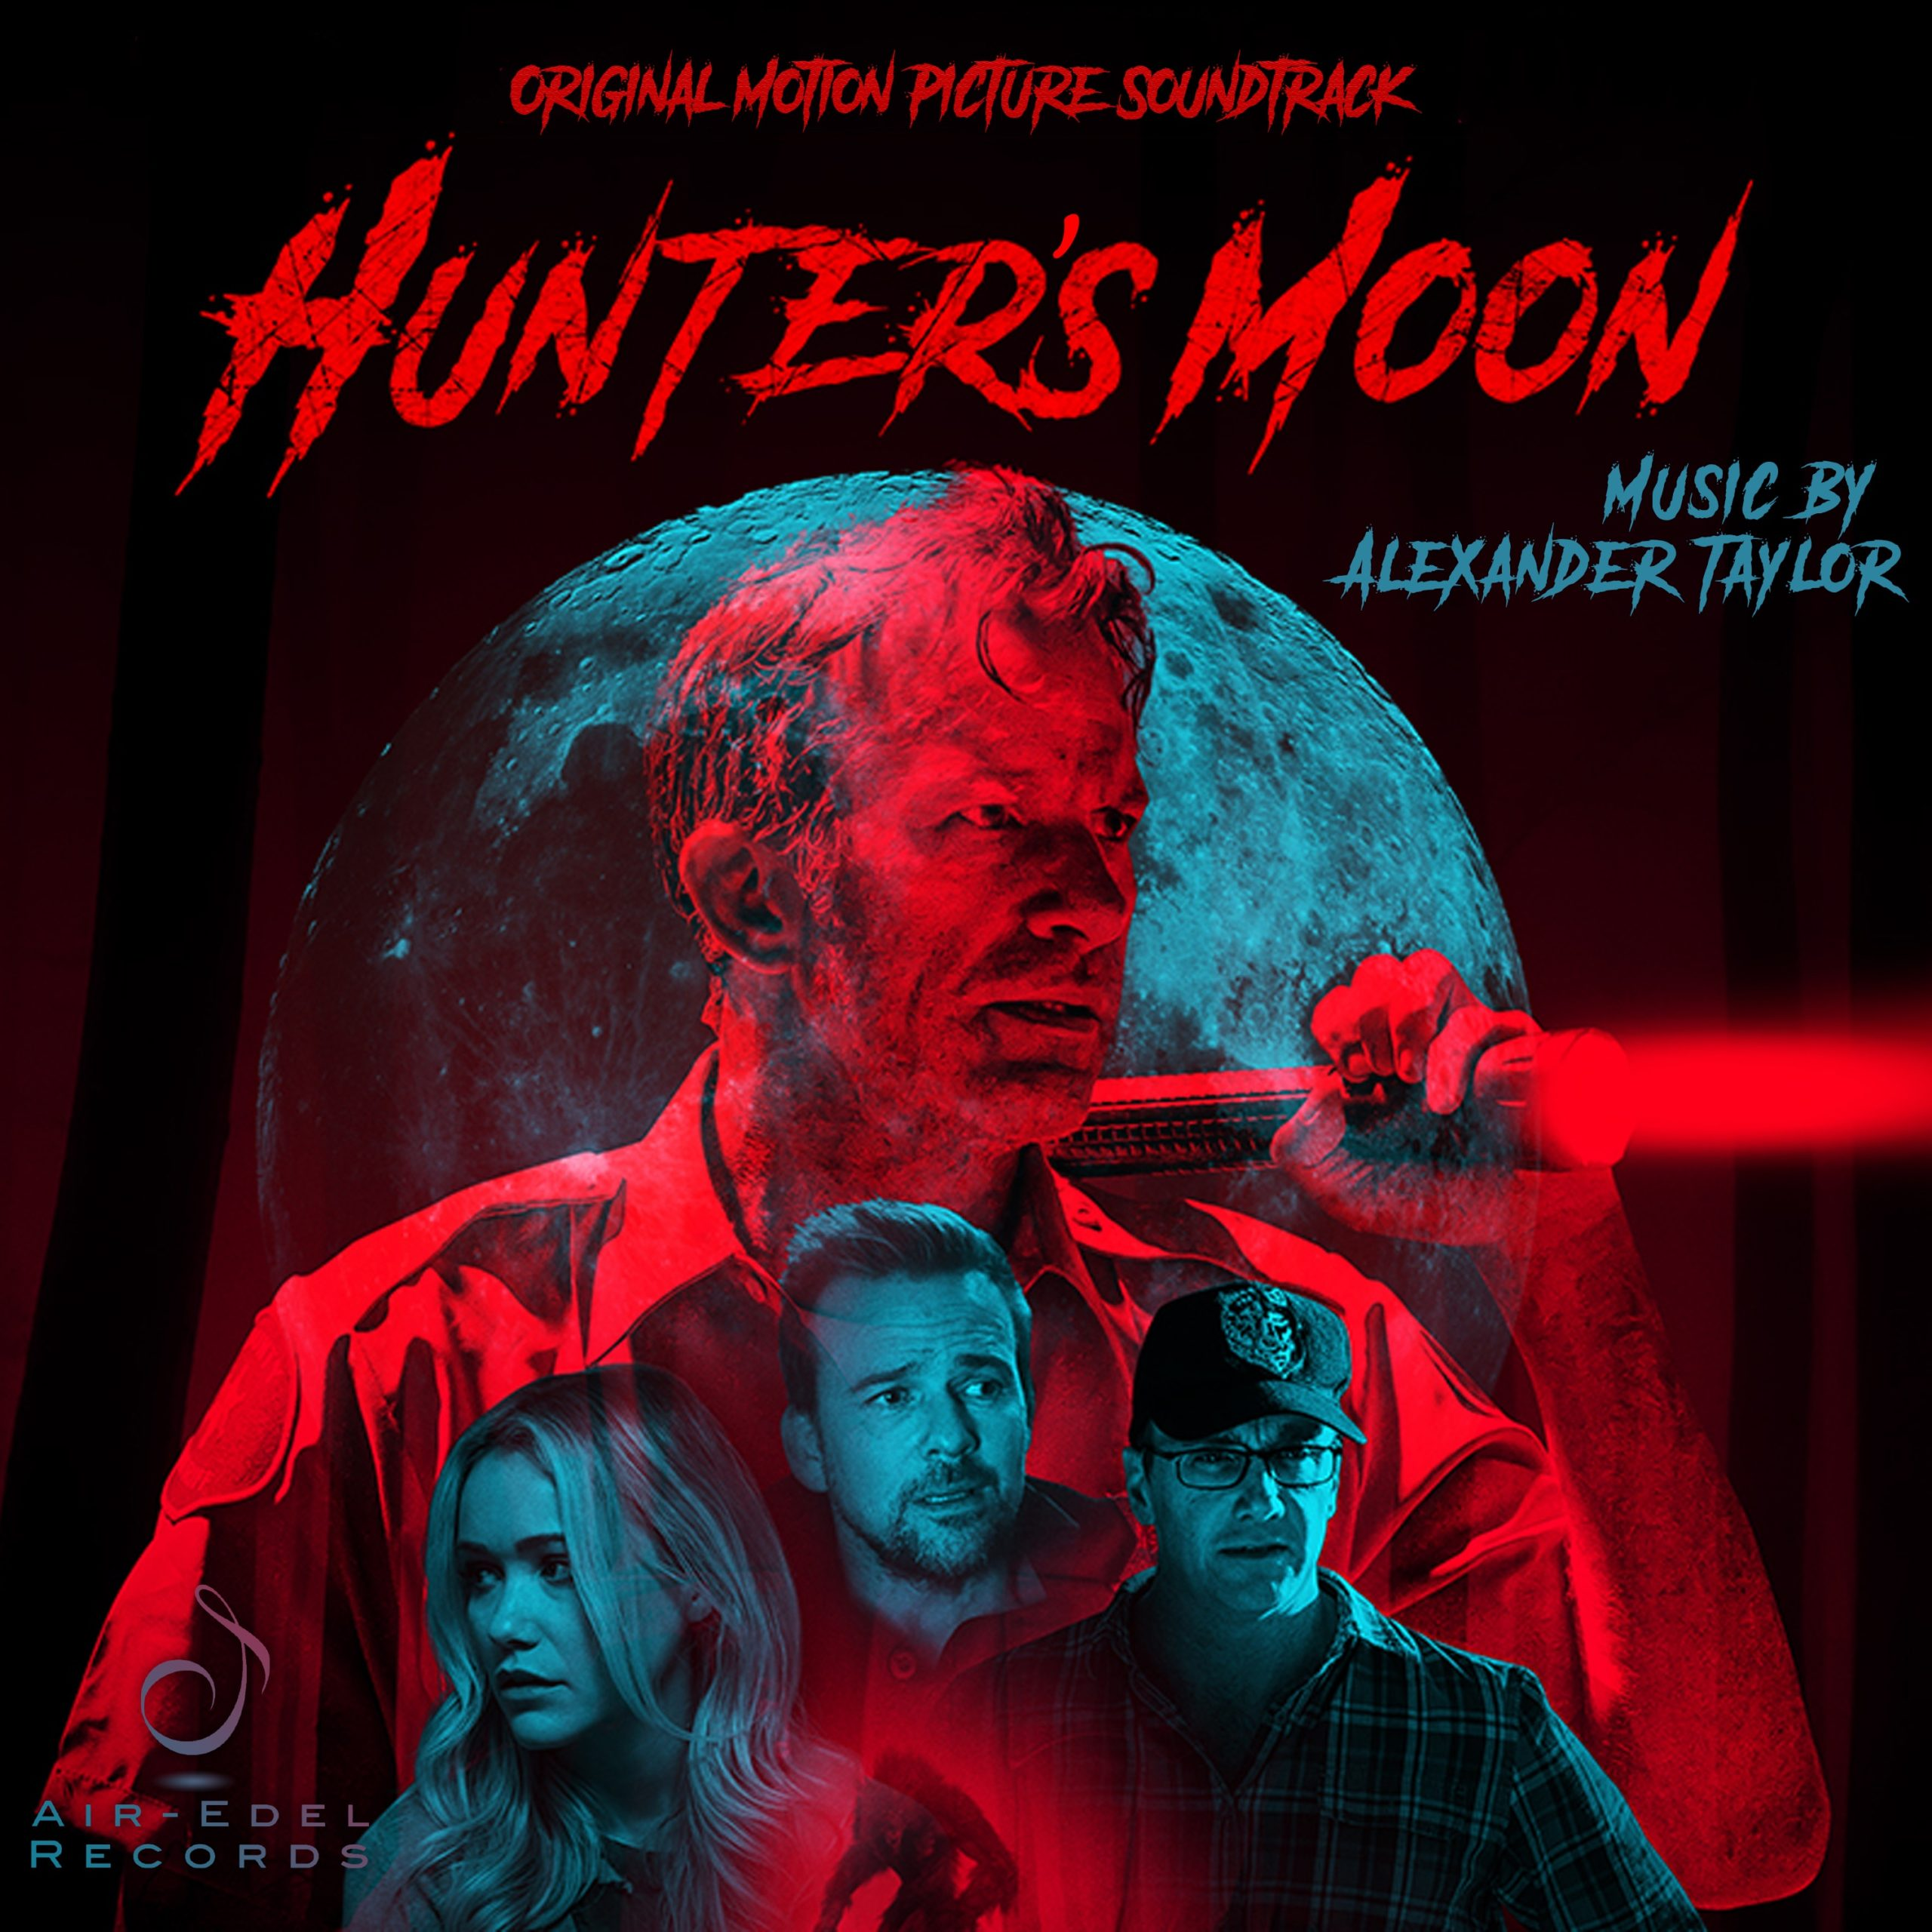 Hunter's Moon Air-Edel Records